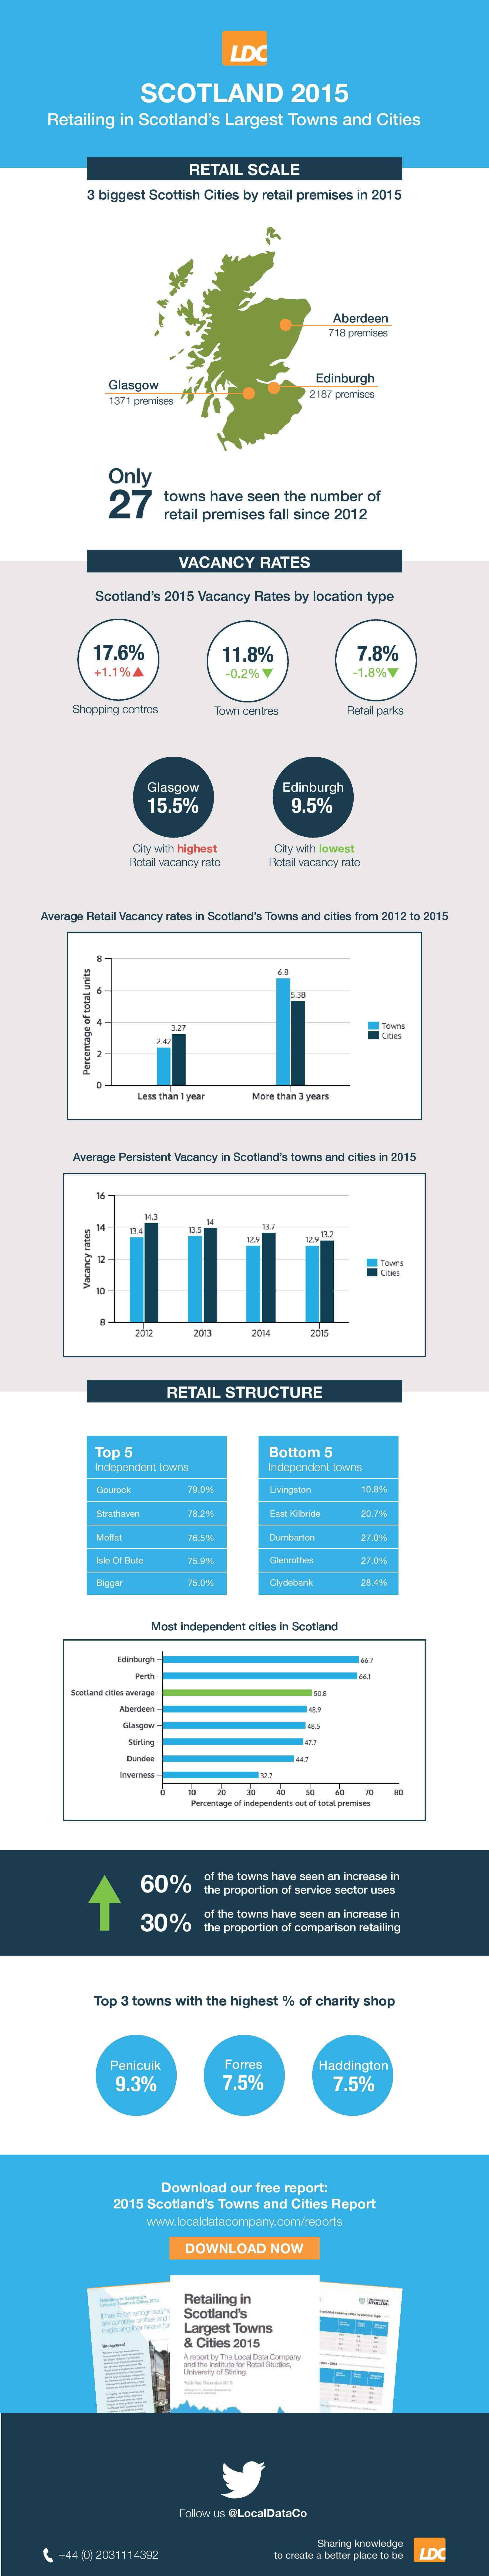 Retailing_in_Scotlands_Largest_Towns_and_Cities_Infographic.jpg